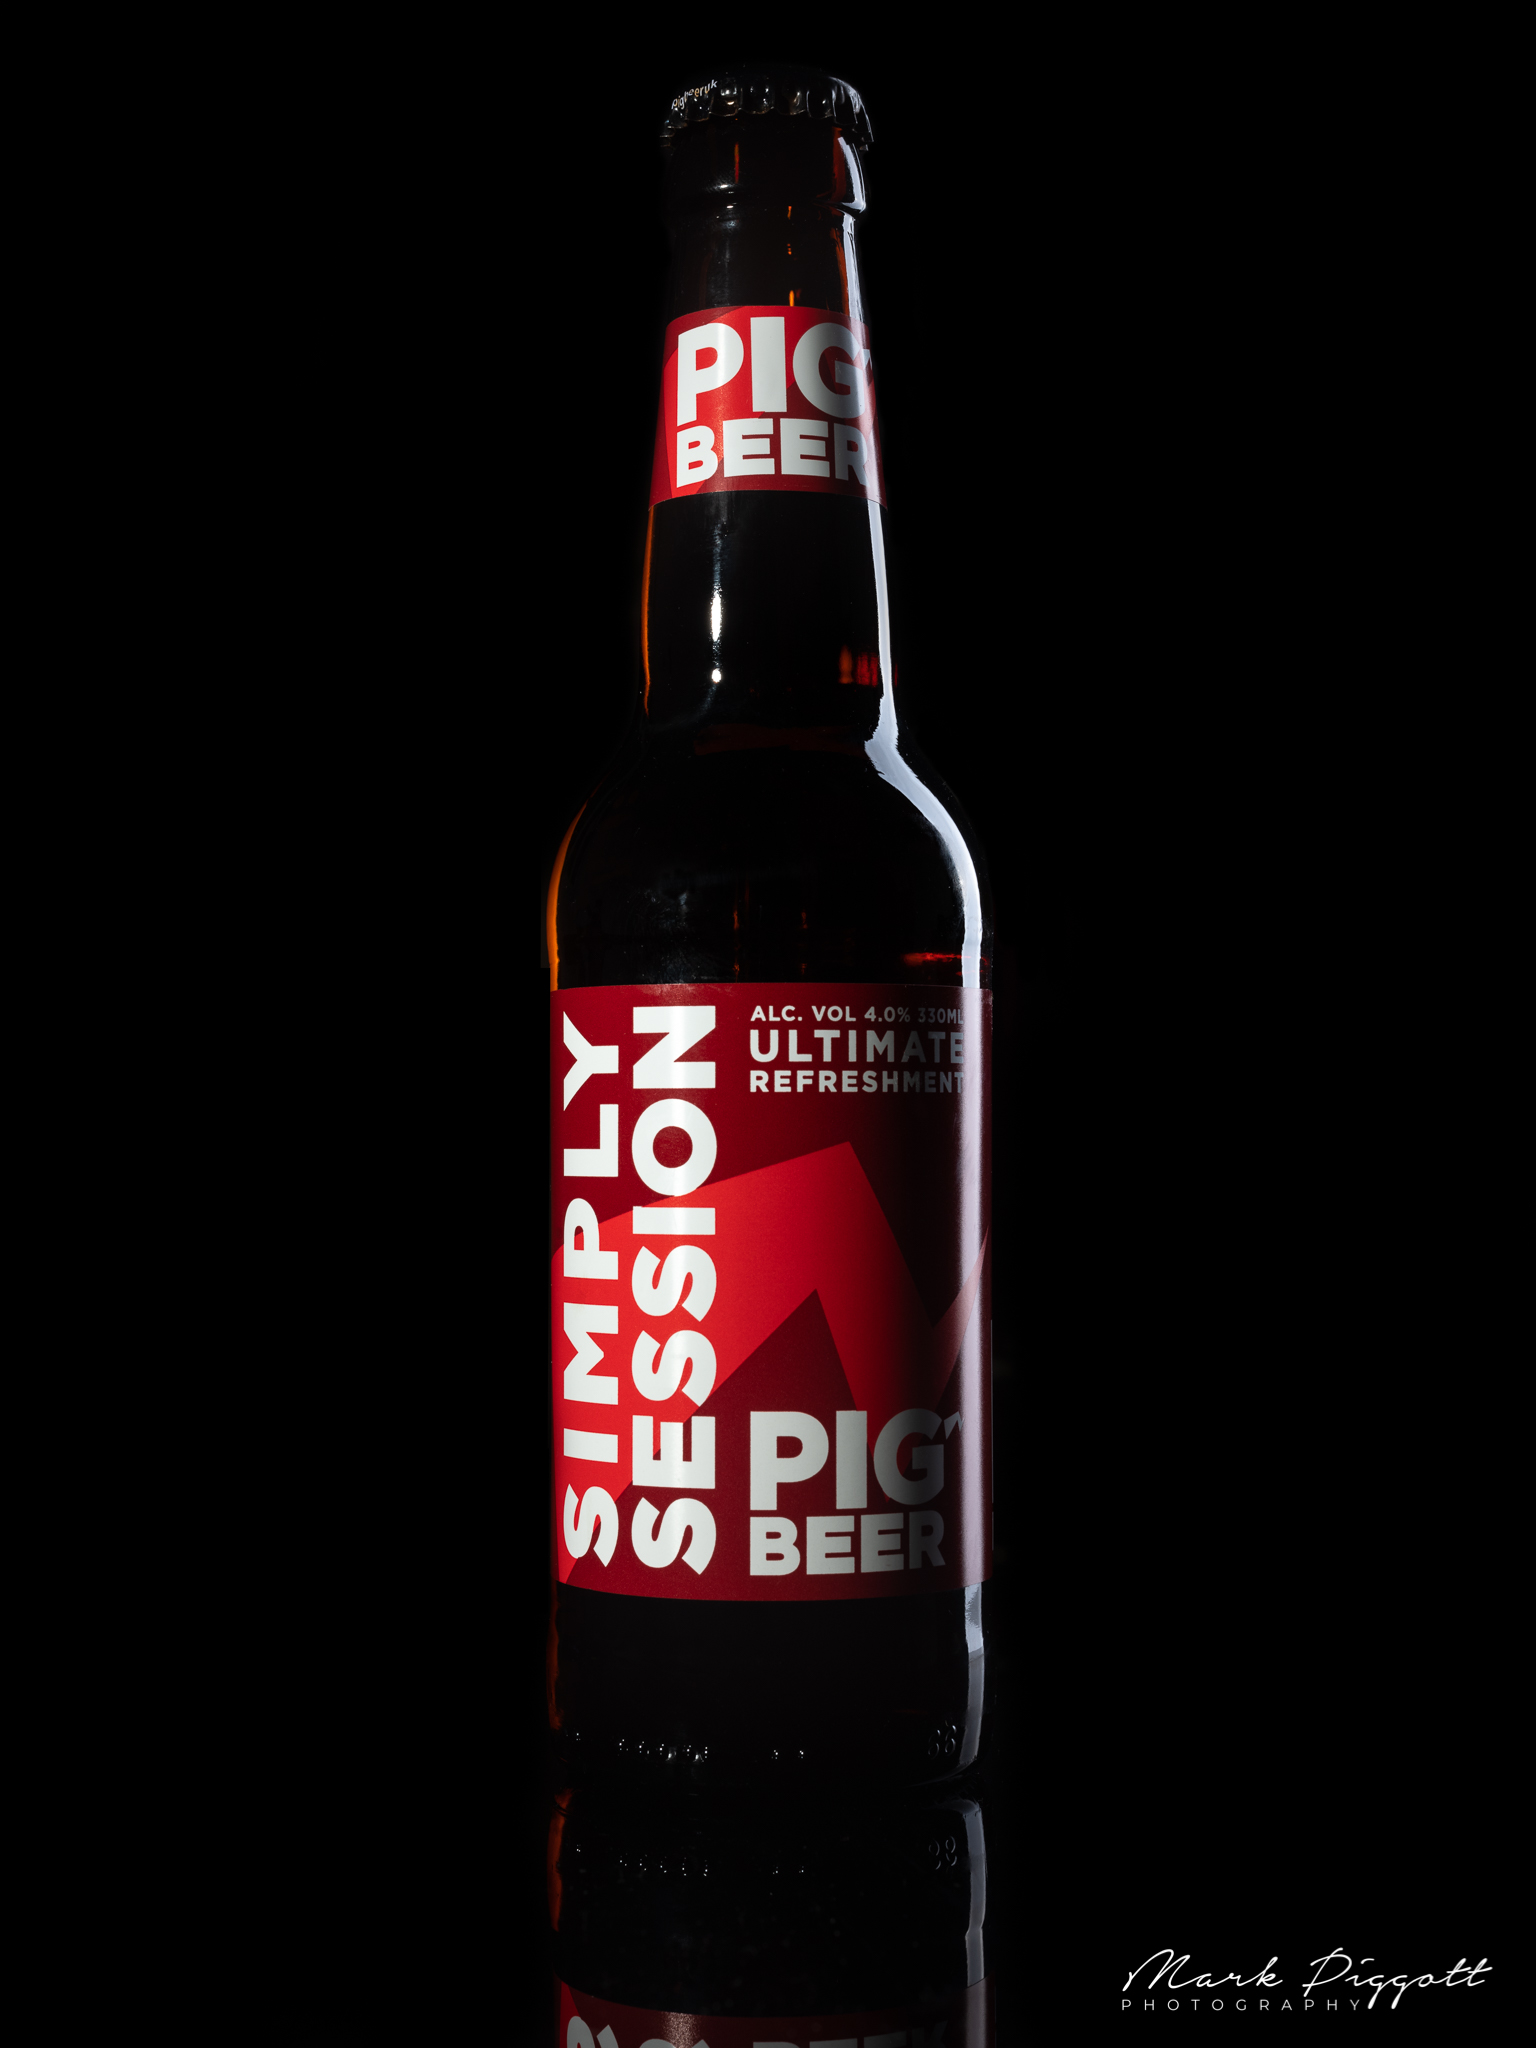 Pig Beer Bottle-152-Edit.jpg